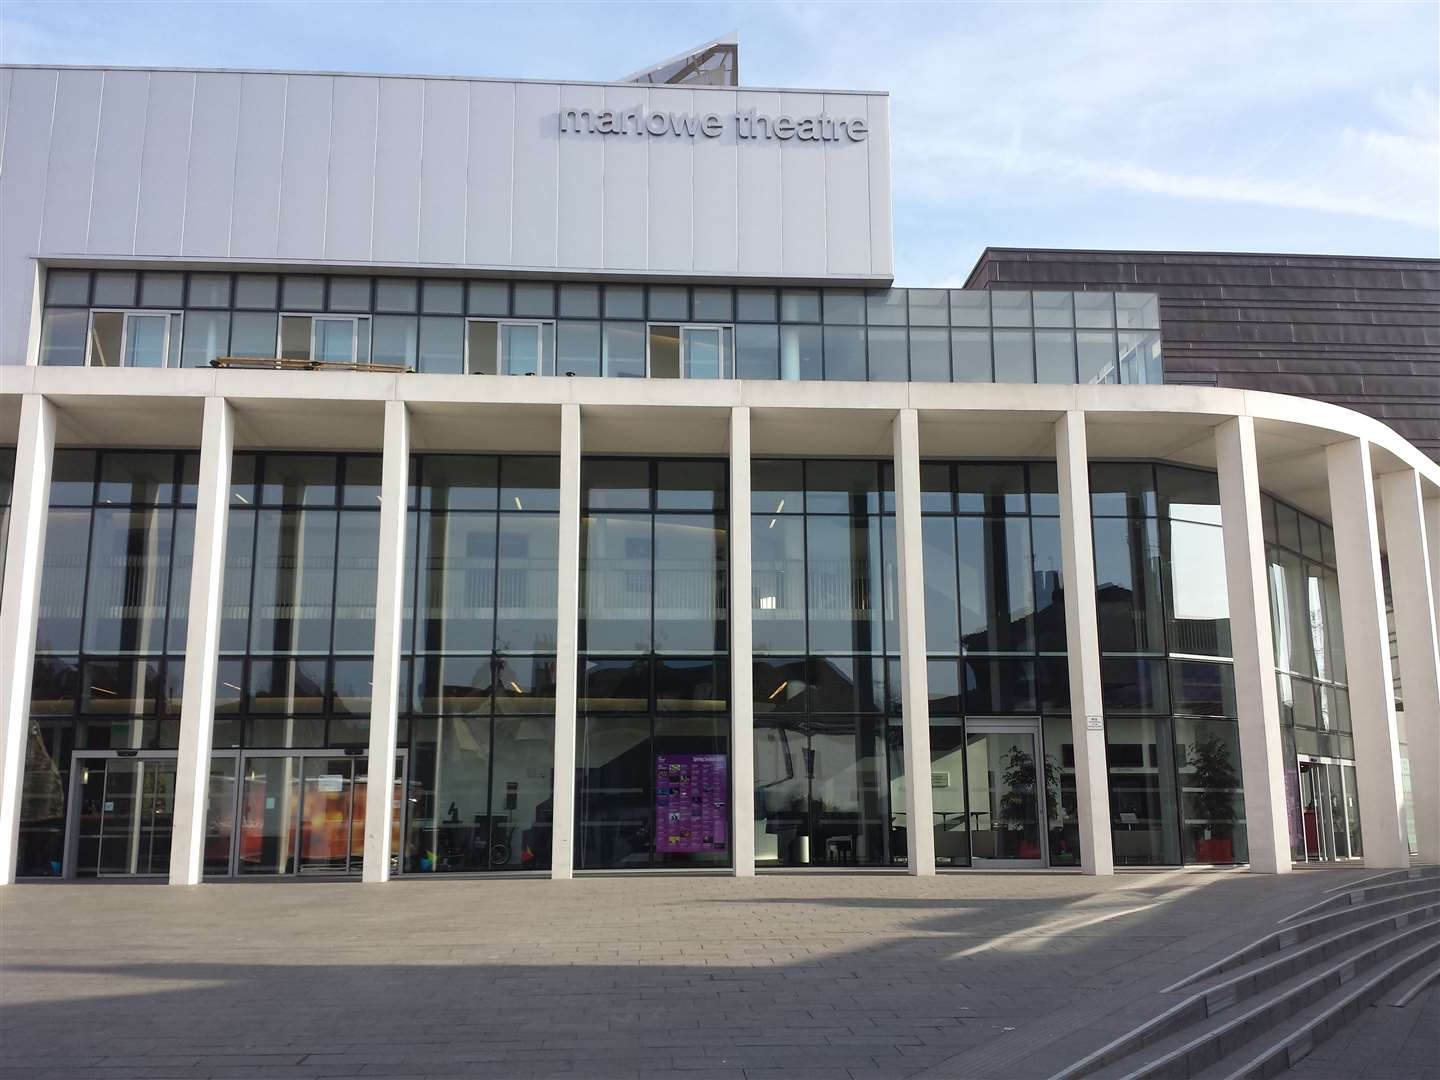 The Marlowe Theatre in Canterbury is set to reopen in June